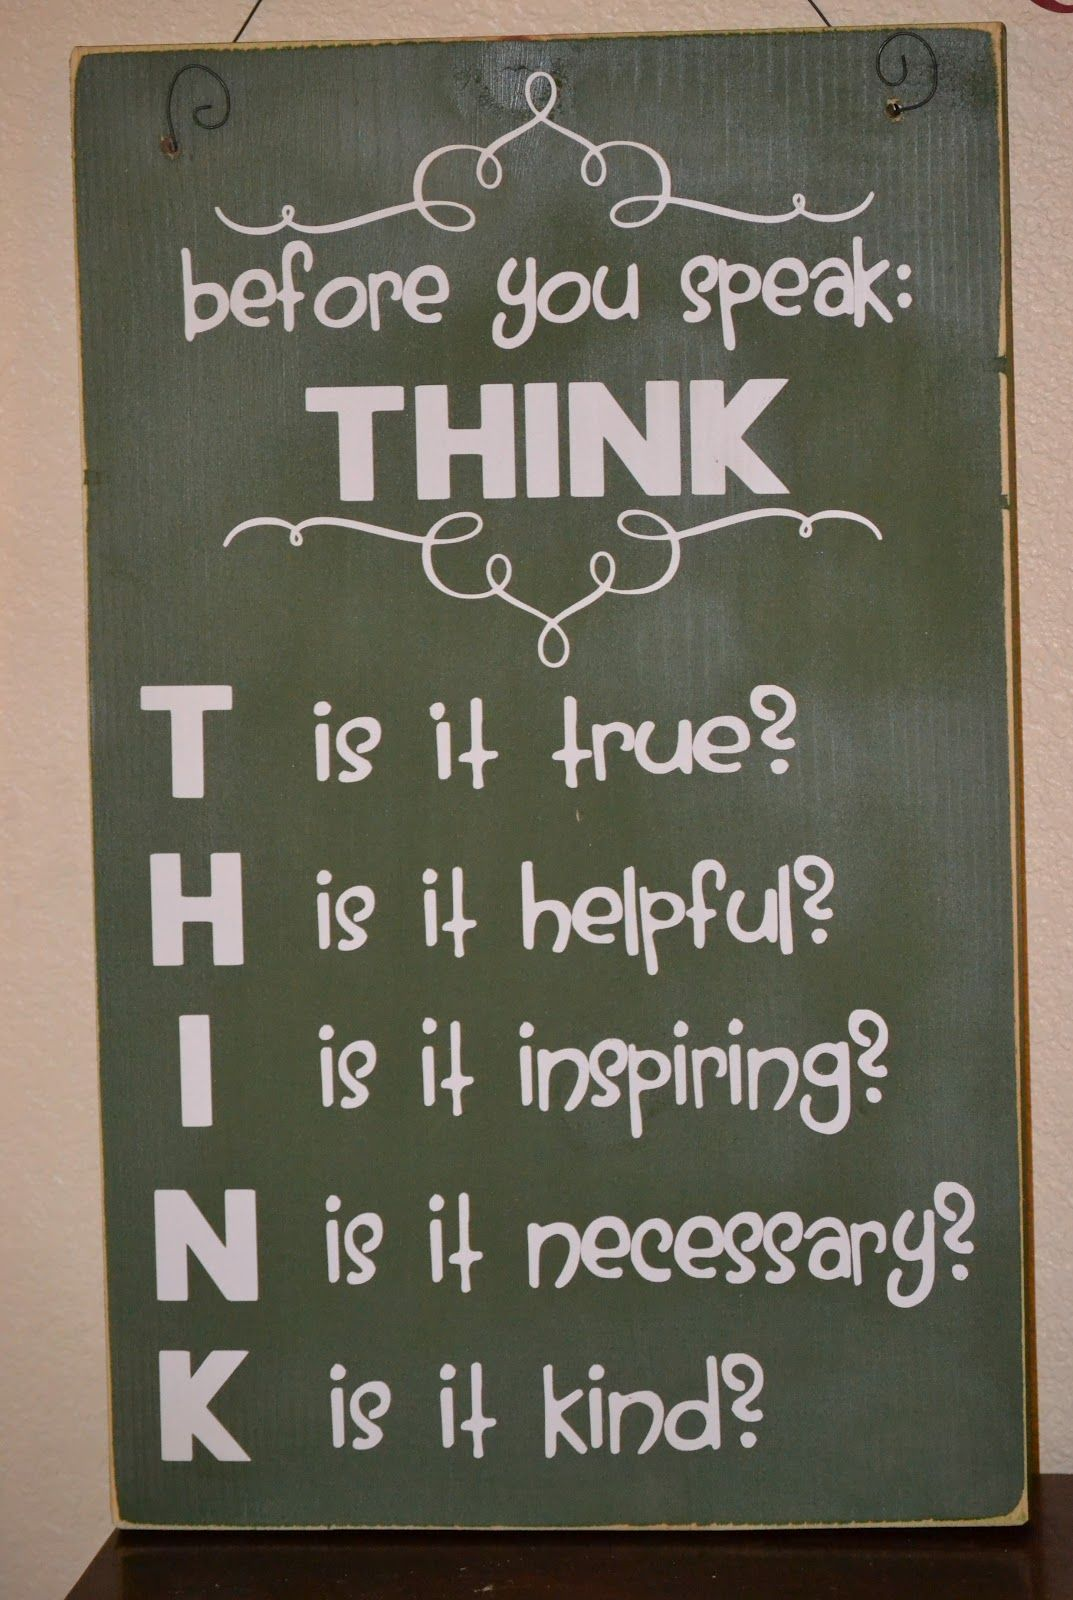 think before you speak Living a life that matters worth seeing: poster before you speak - think t - is it true h - is it helpful i - does it inspire confidence n - is it necessary k - is it kind - adapted by michael josephson from unknown original source.